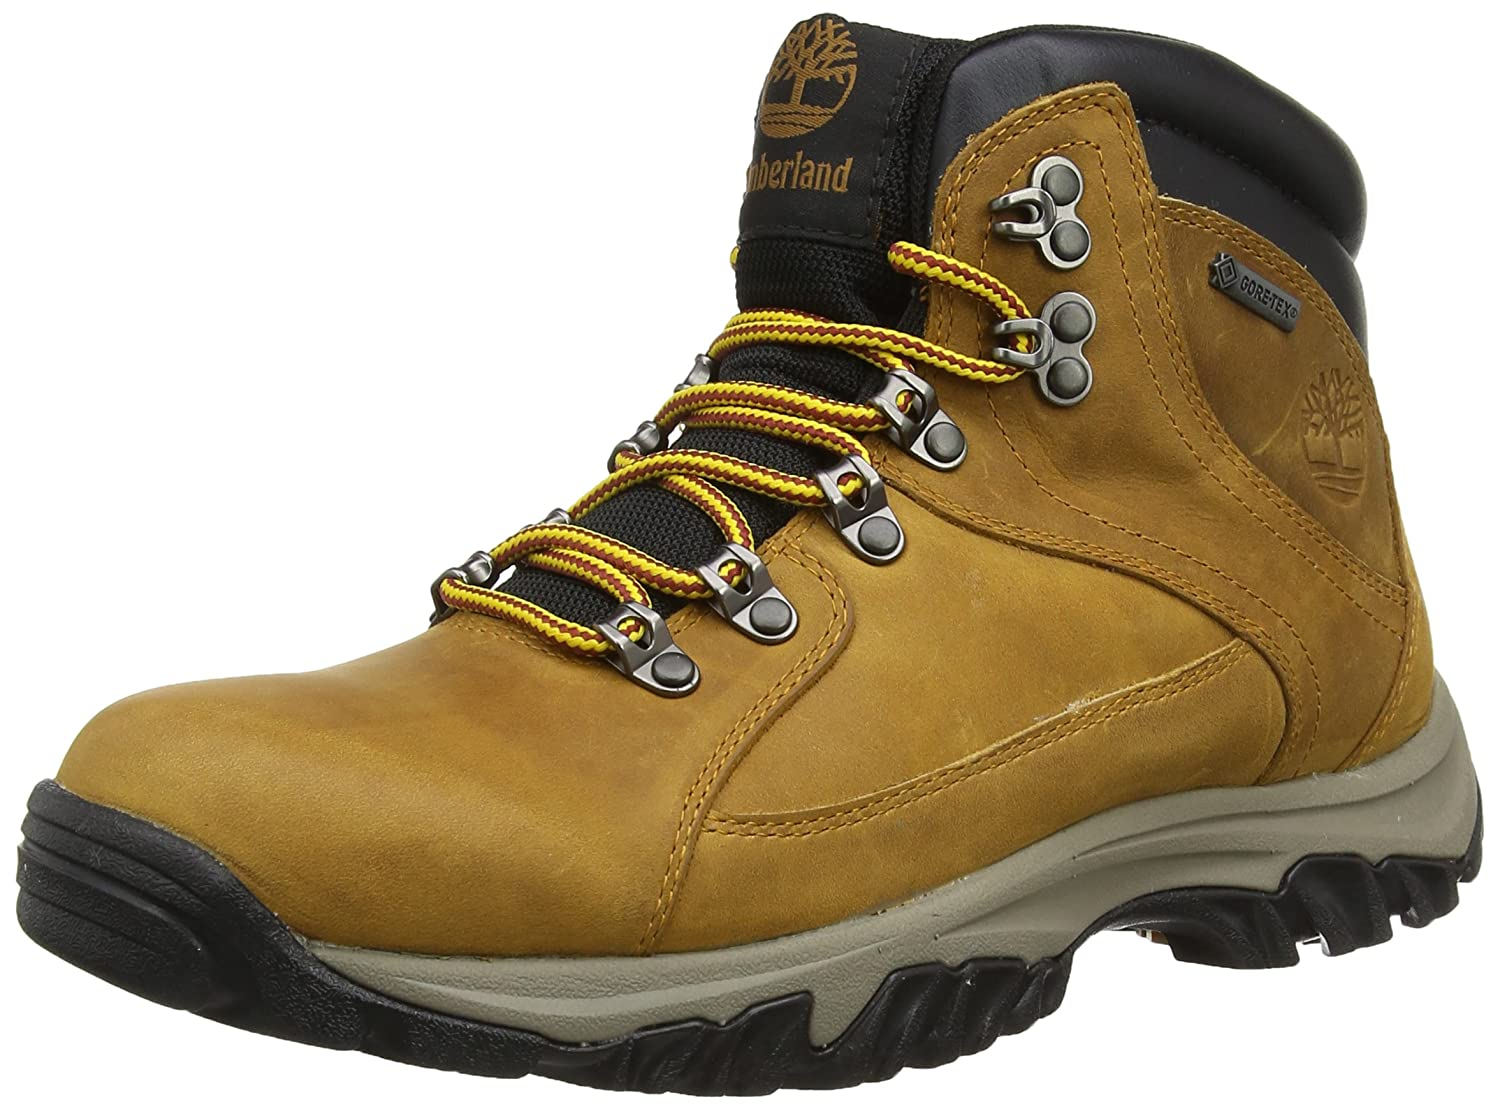 f4782563014 Timberland Men's Thorton FTP Mid GTX High Rise Hiking Shoes, Yellow ...